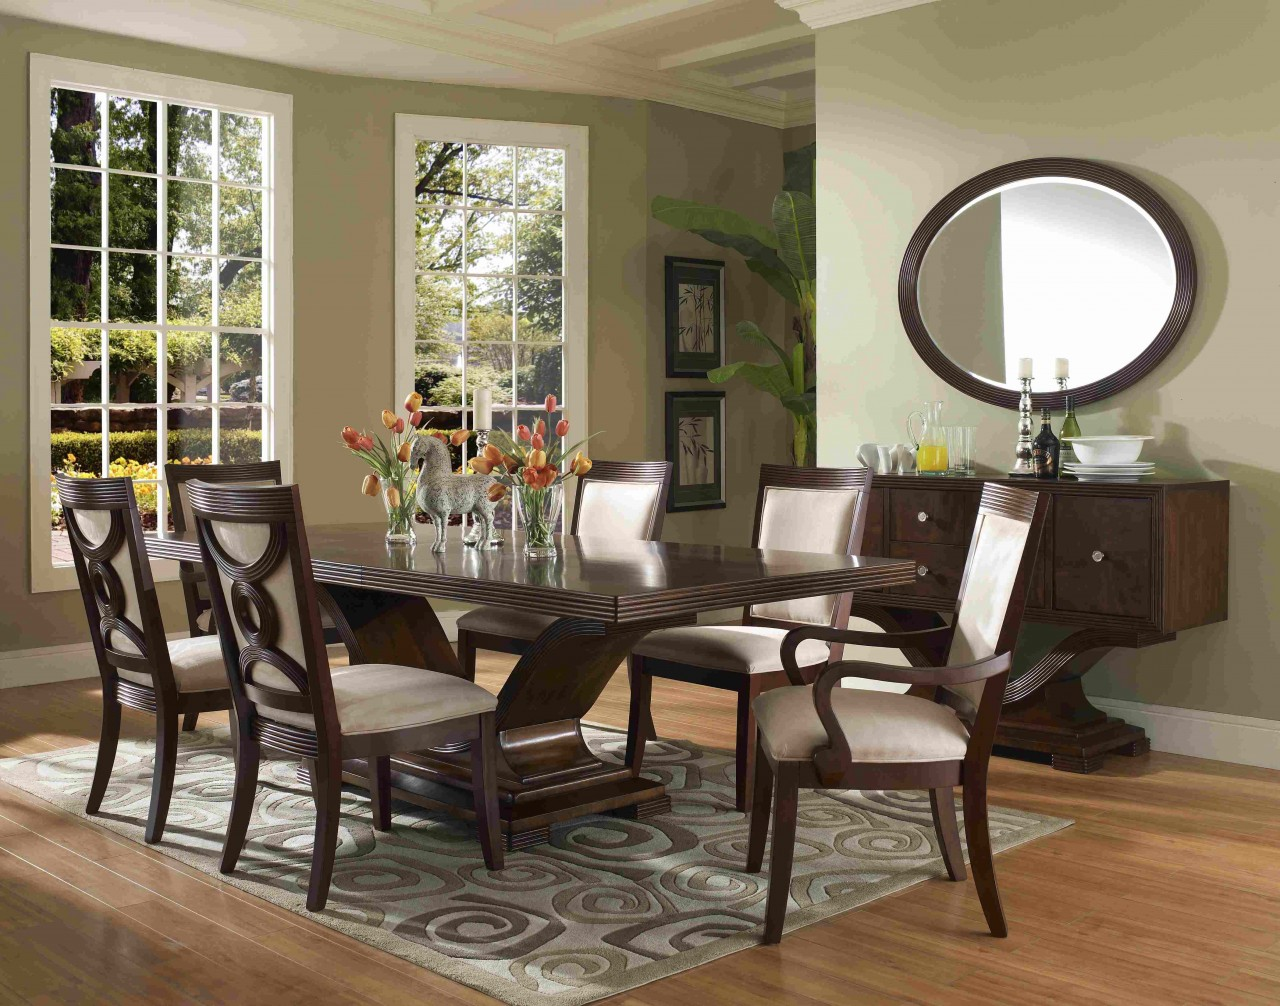 Perfect Formal Dining Room Sets for 8 | HomesFeed